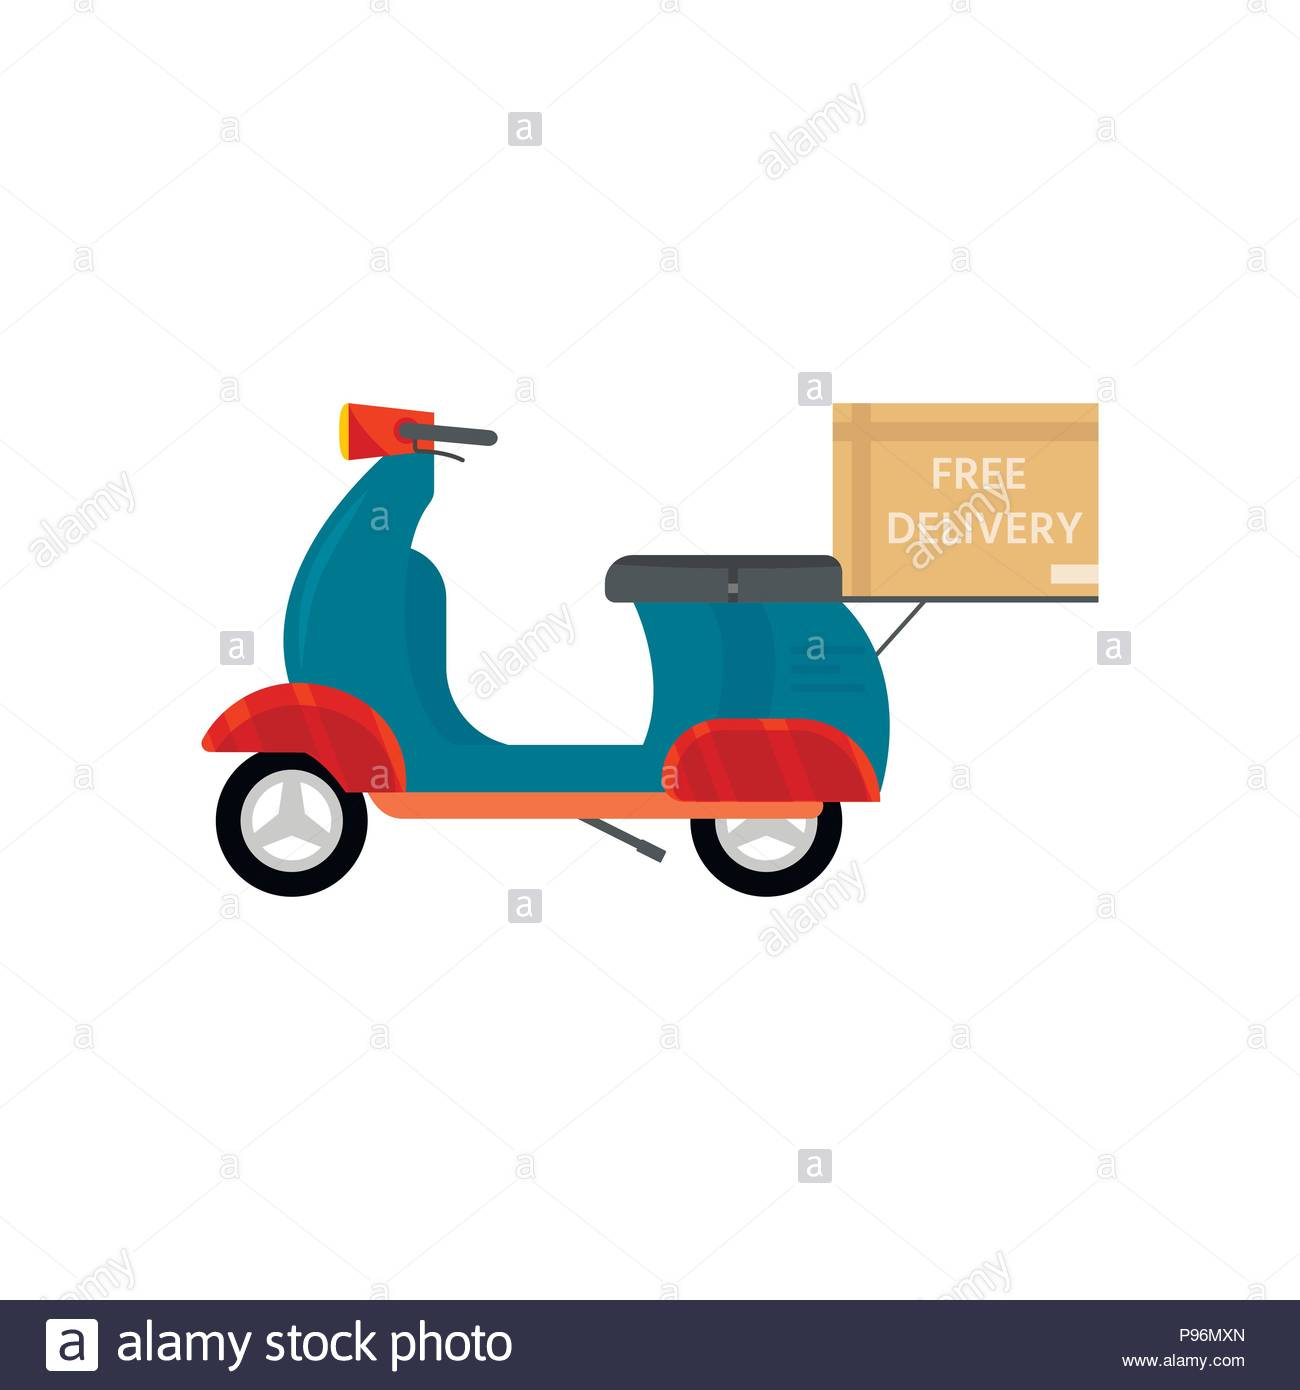 Logistics and delivery icon service isolated on white background 1300x1390